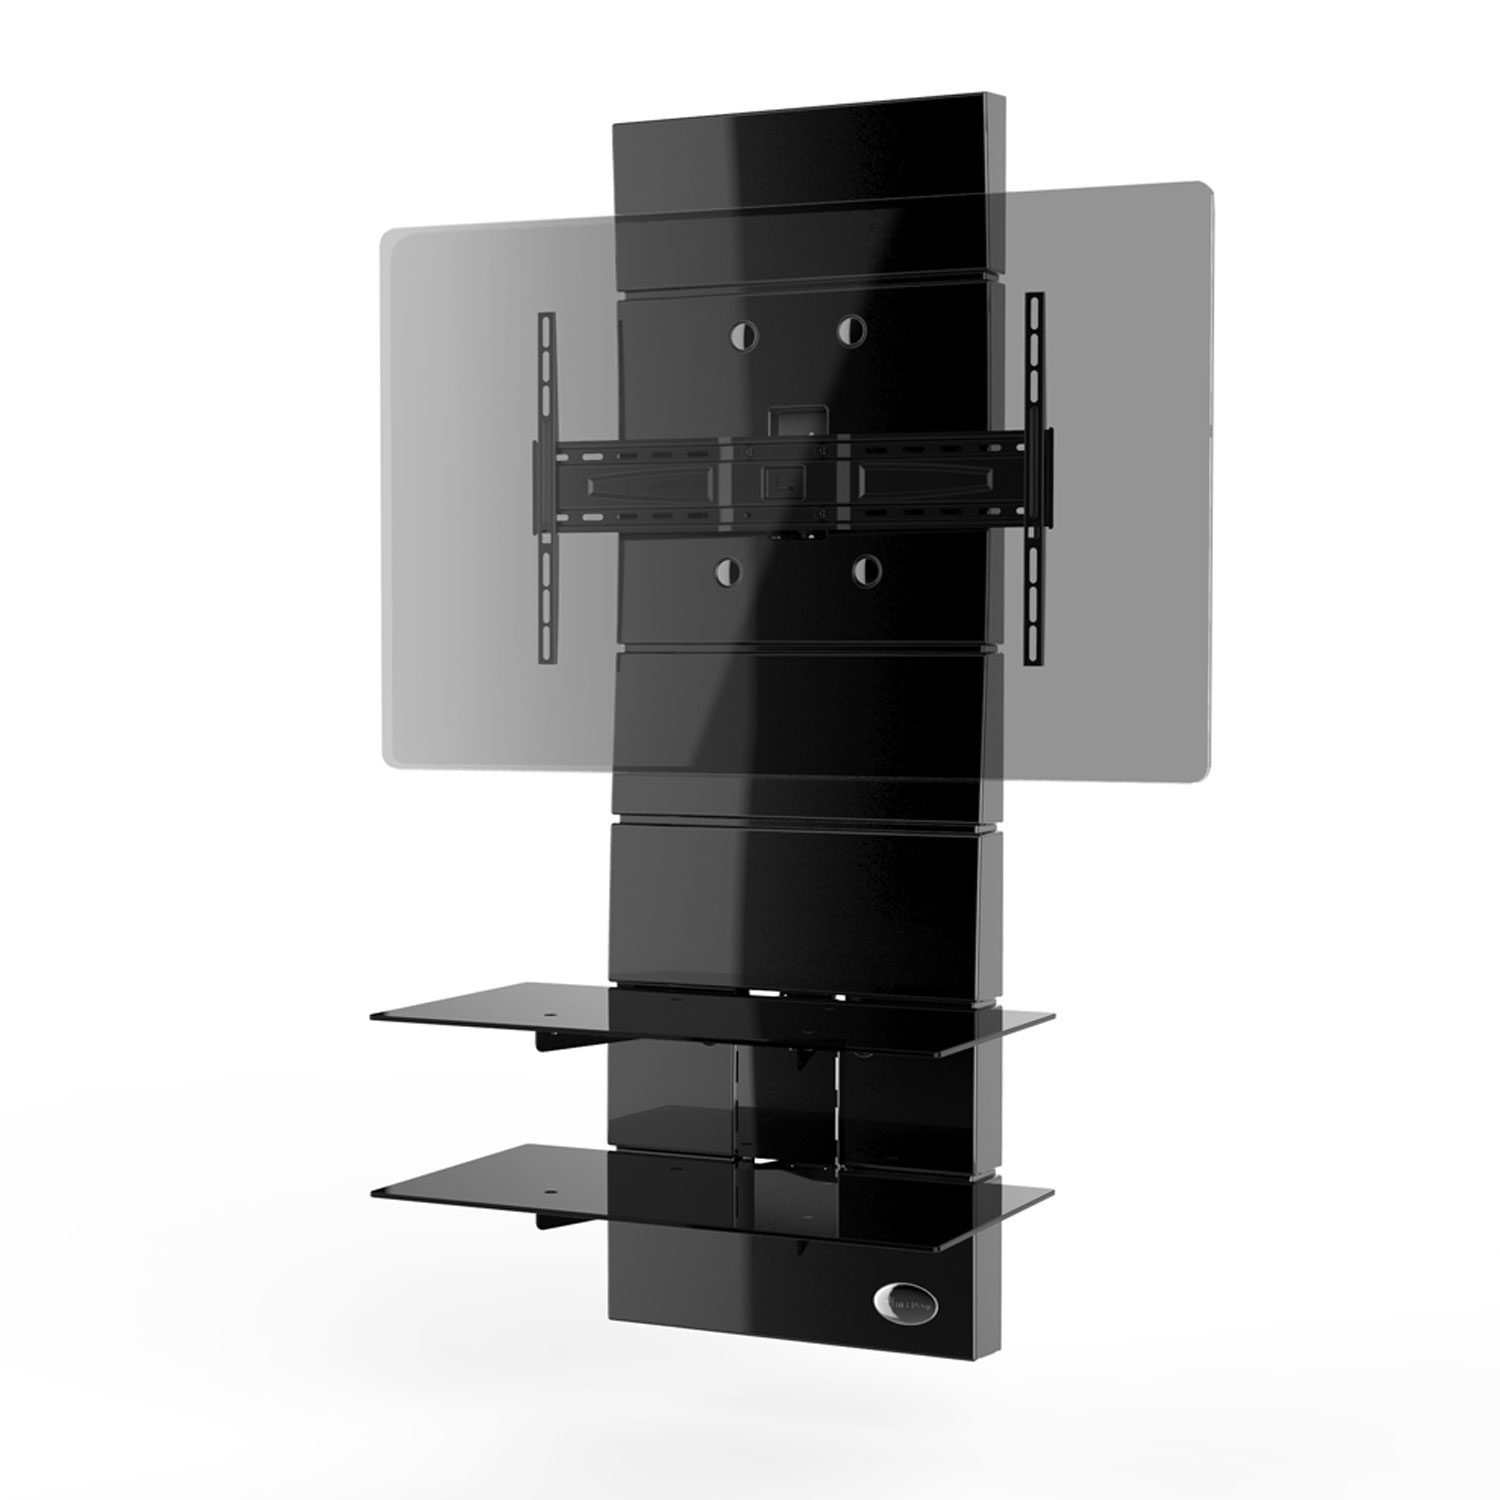 meliconi ghost design 3000 noir meuble tv meliconi sur ldlc. Black Bedroom Furniture Sets. Home Design Ideas